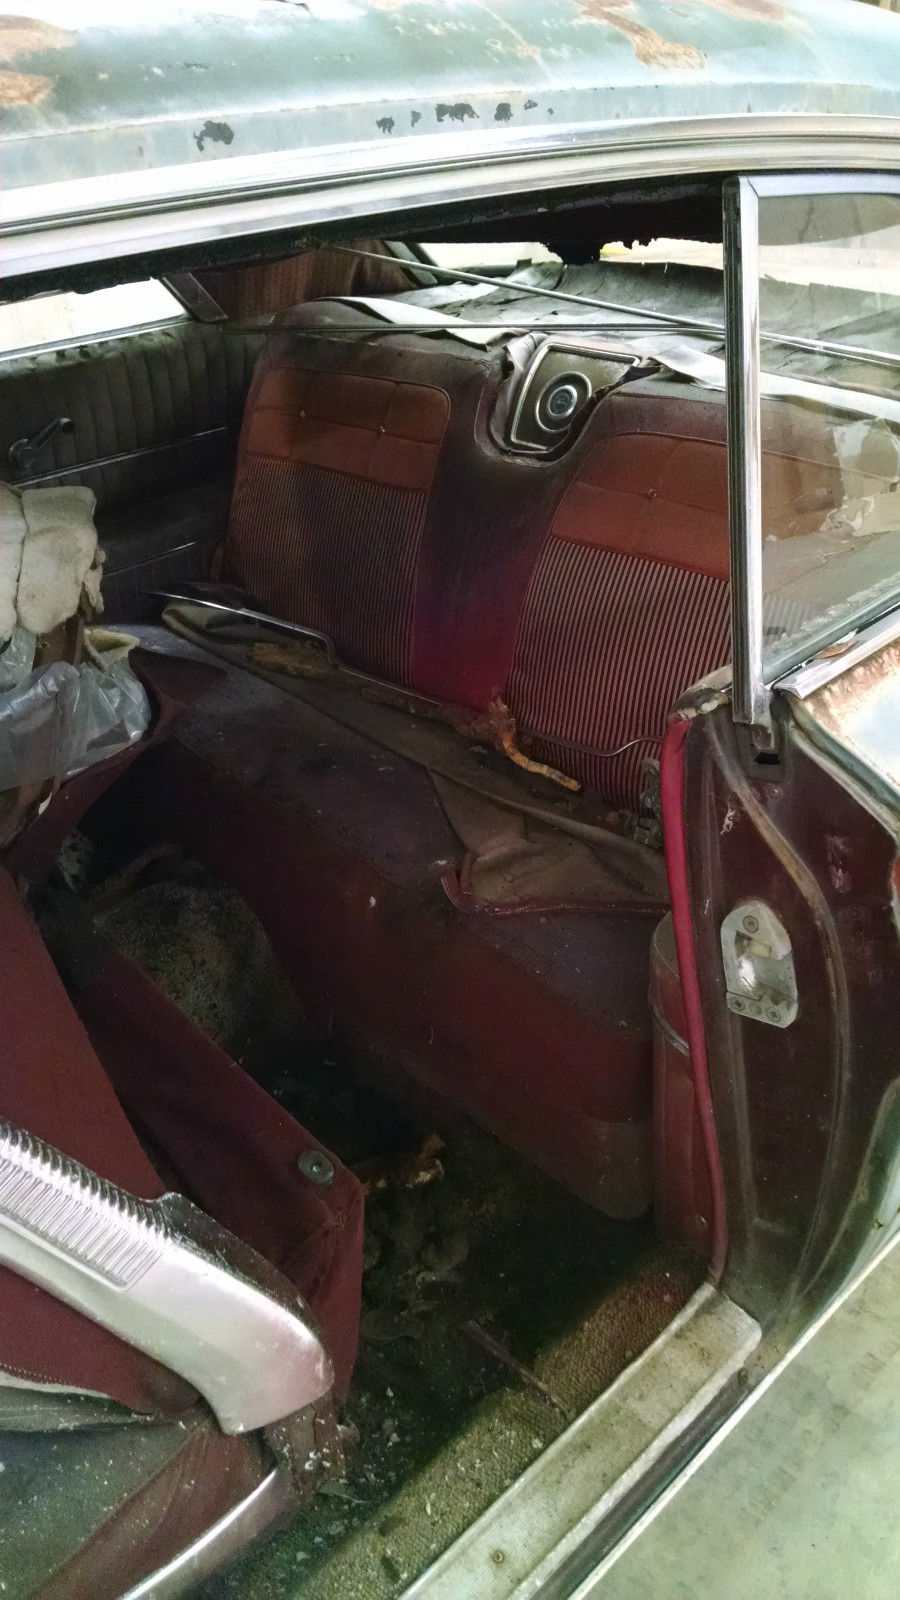 1962 Chevy Impala 2 Door Hardtop Project Car For Sale In